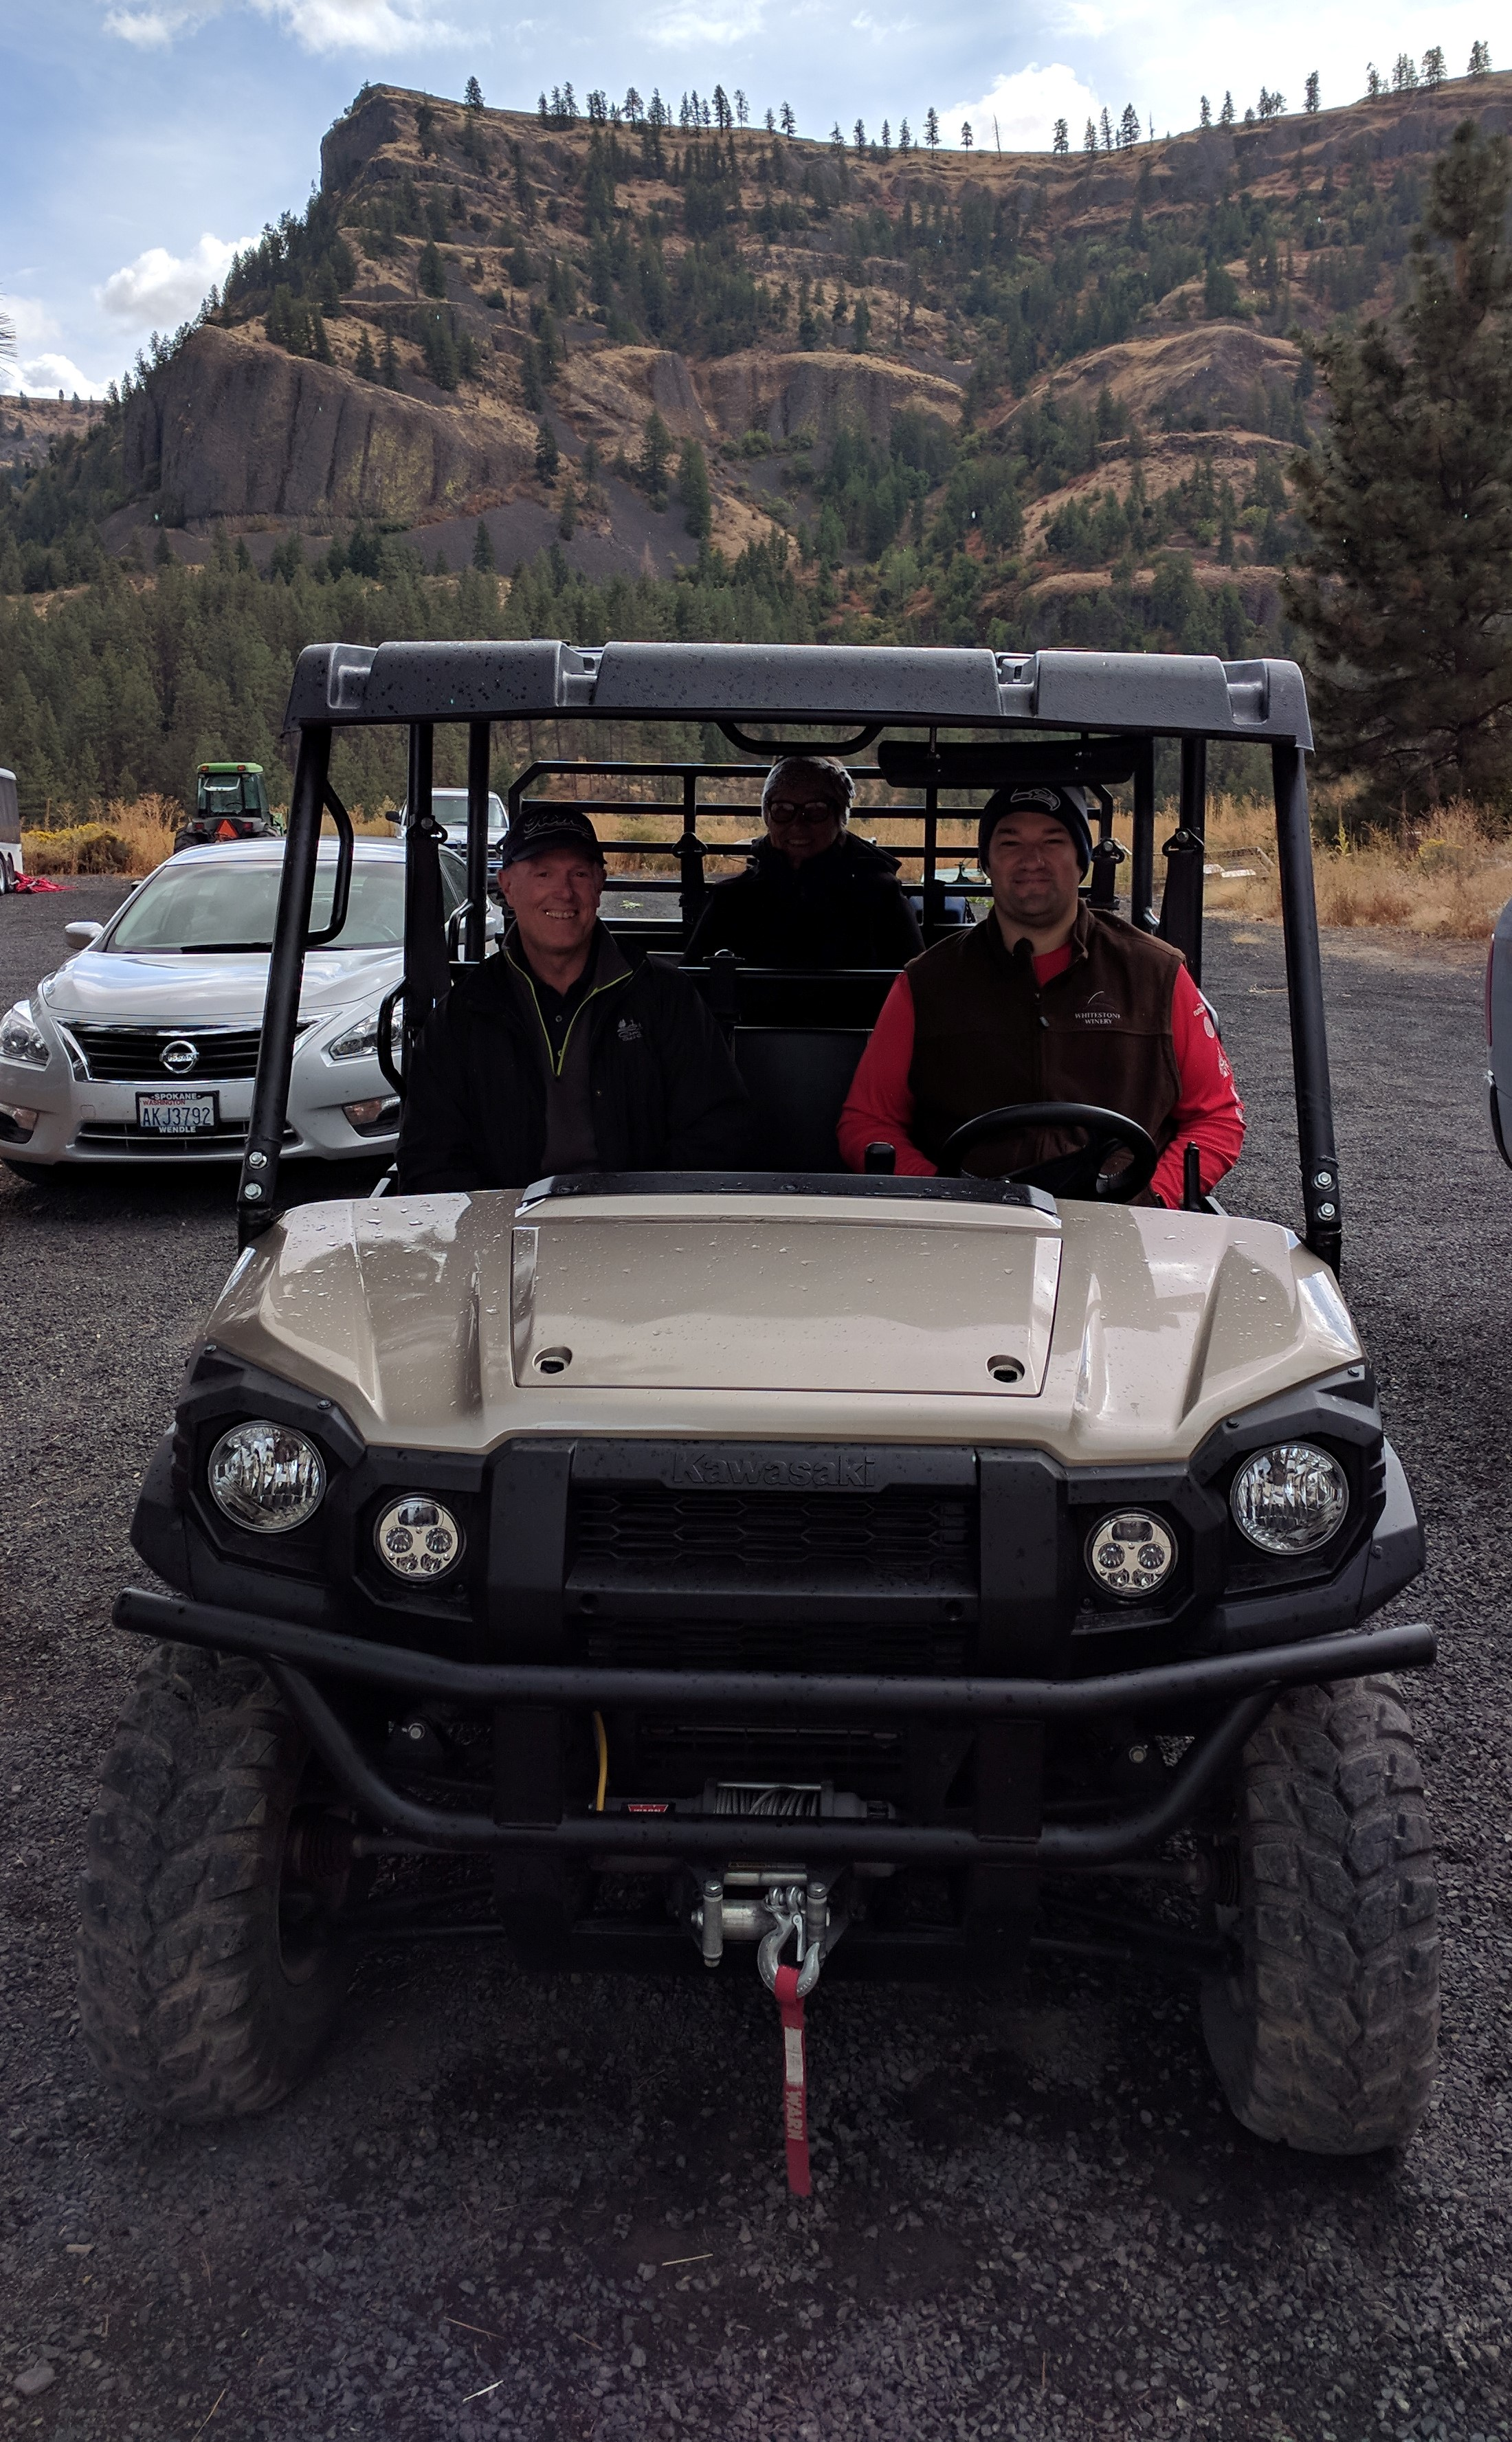 My parents and Michael going for a ride